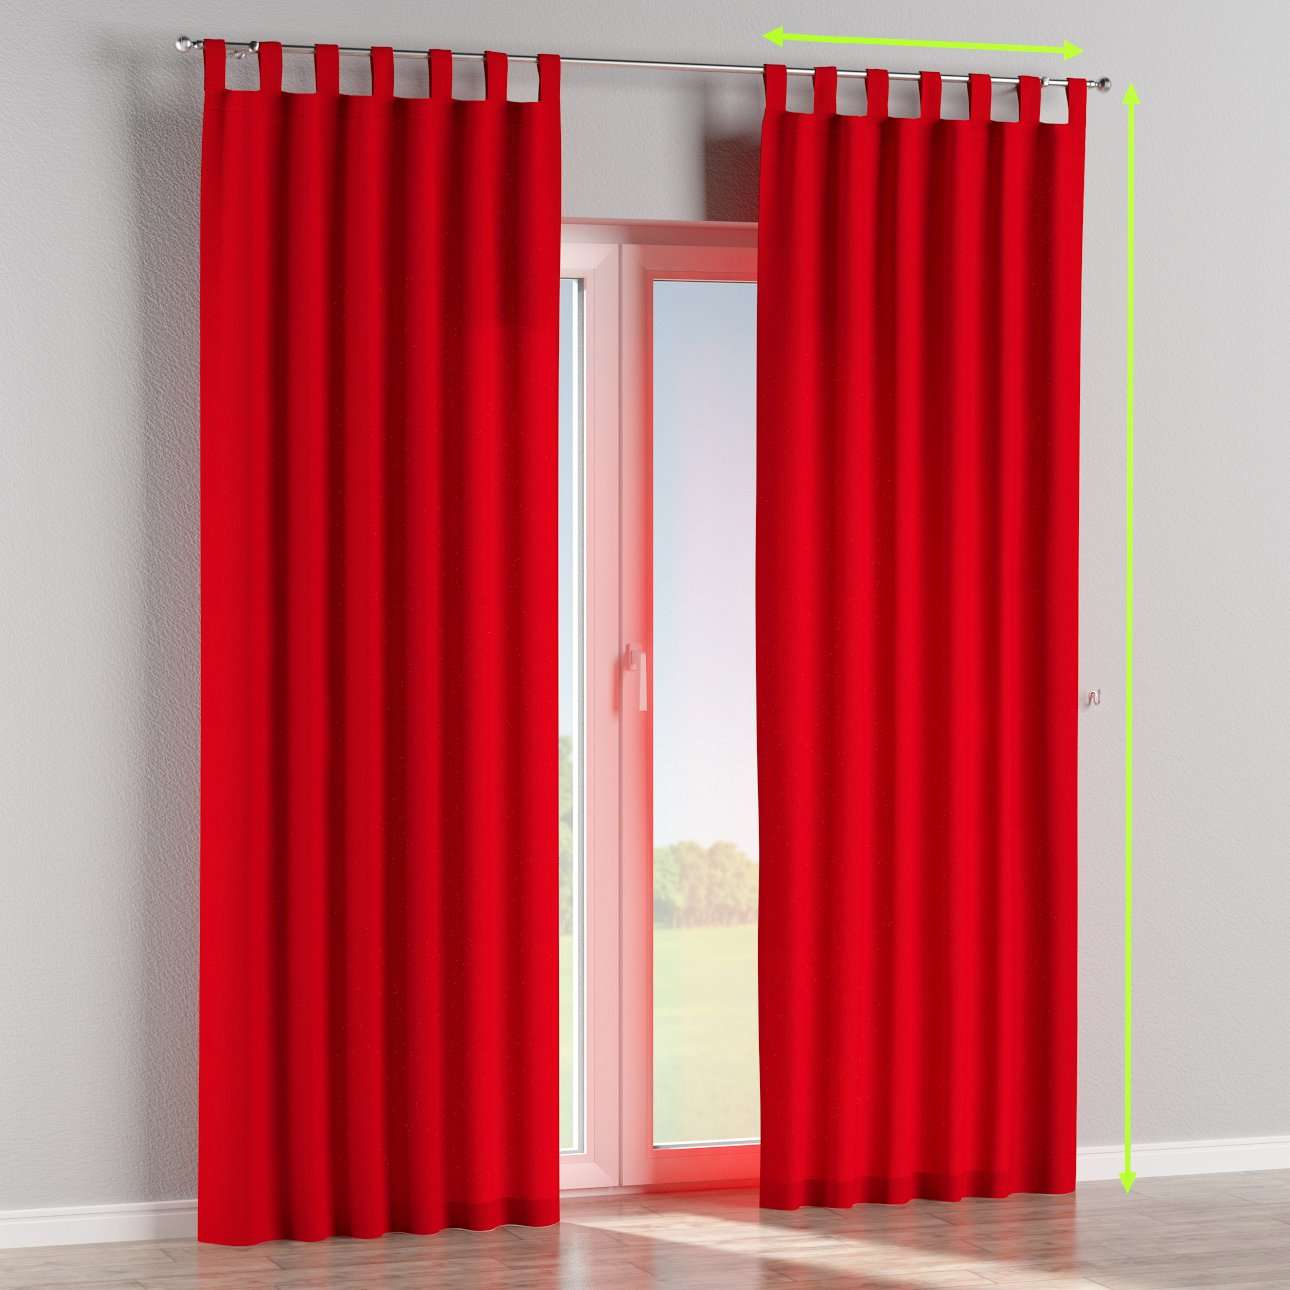 Tab top lined curtains in collection Chenille, fabric: 702-24